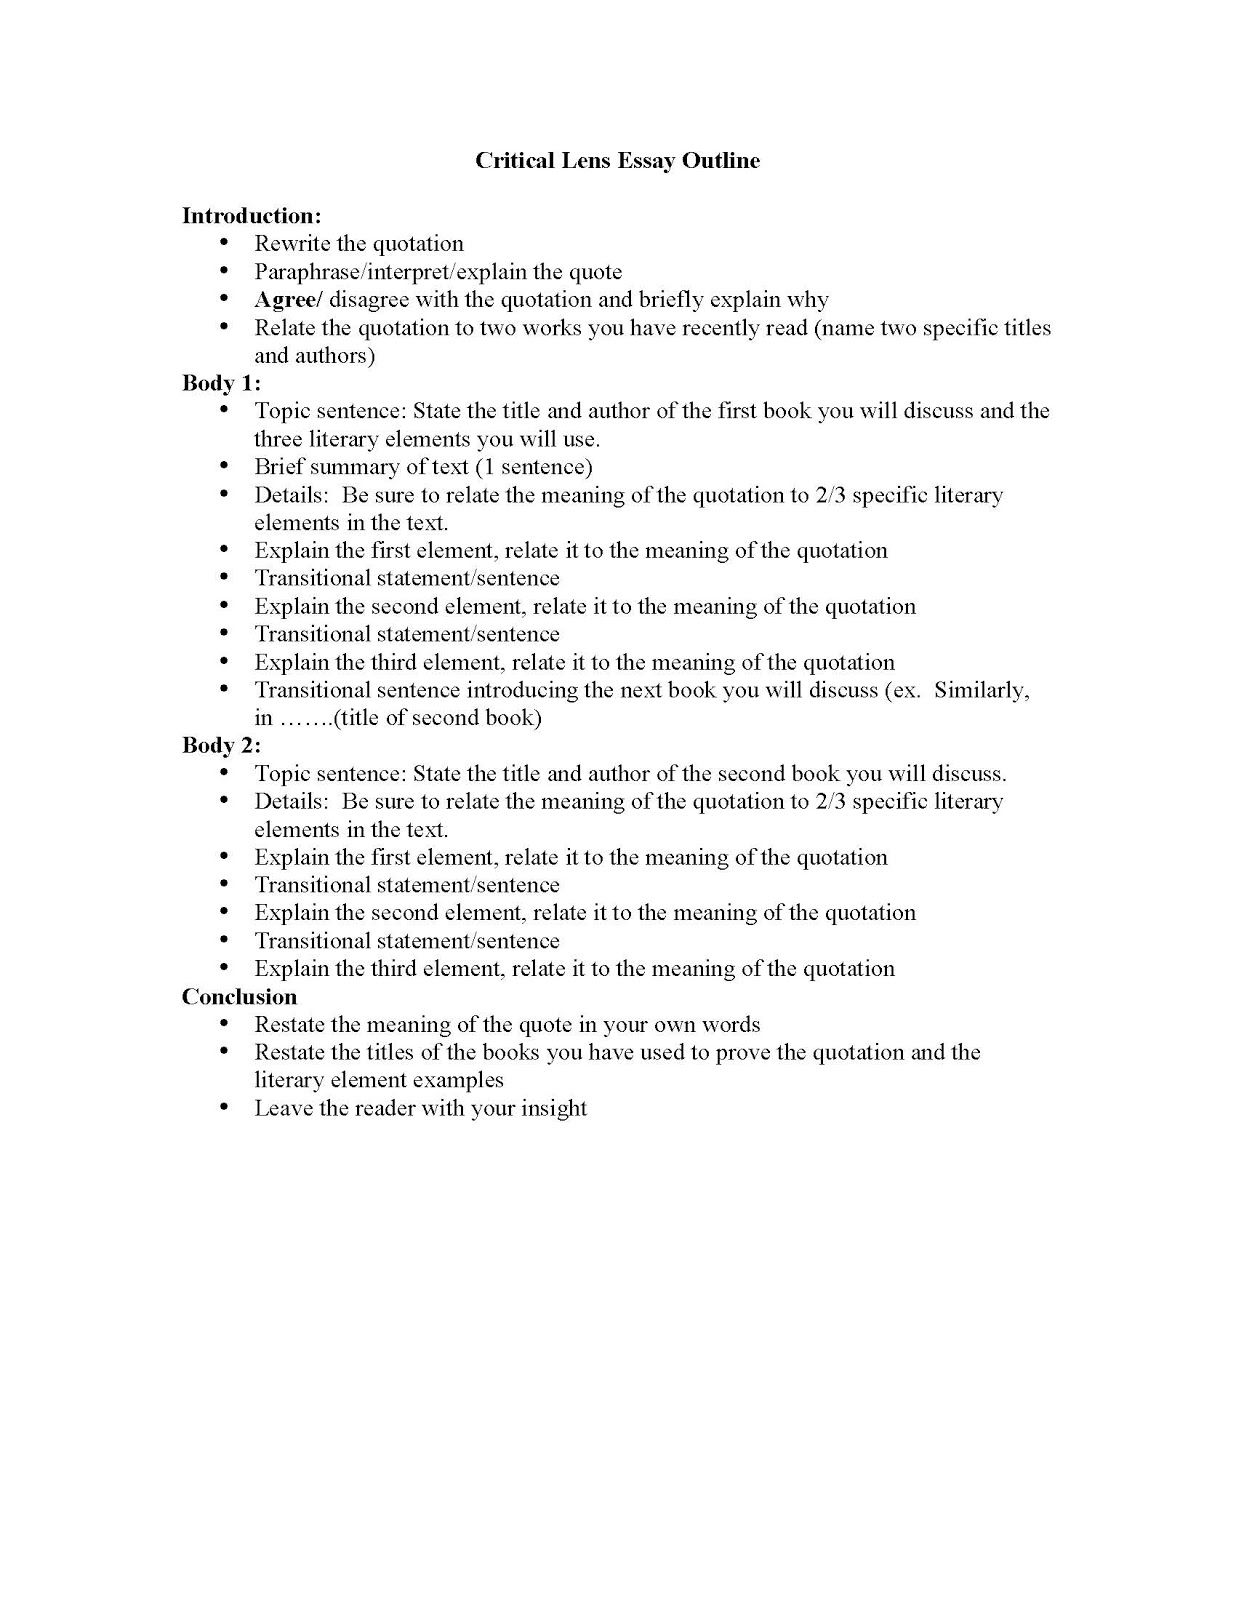 010 Essay Example Criticallensessayoutlineandliterayelements Page 1 Fascinating Outline About Immigration Tok Structure Definition Full